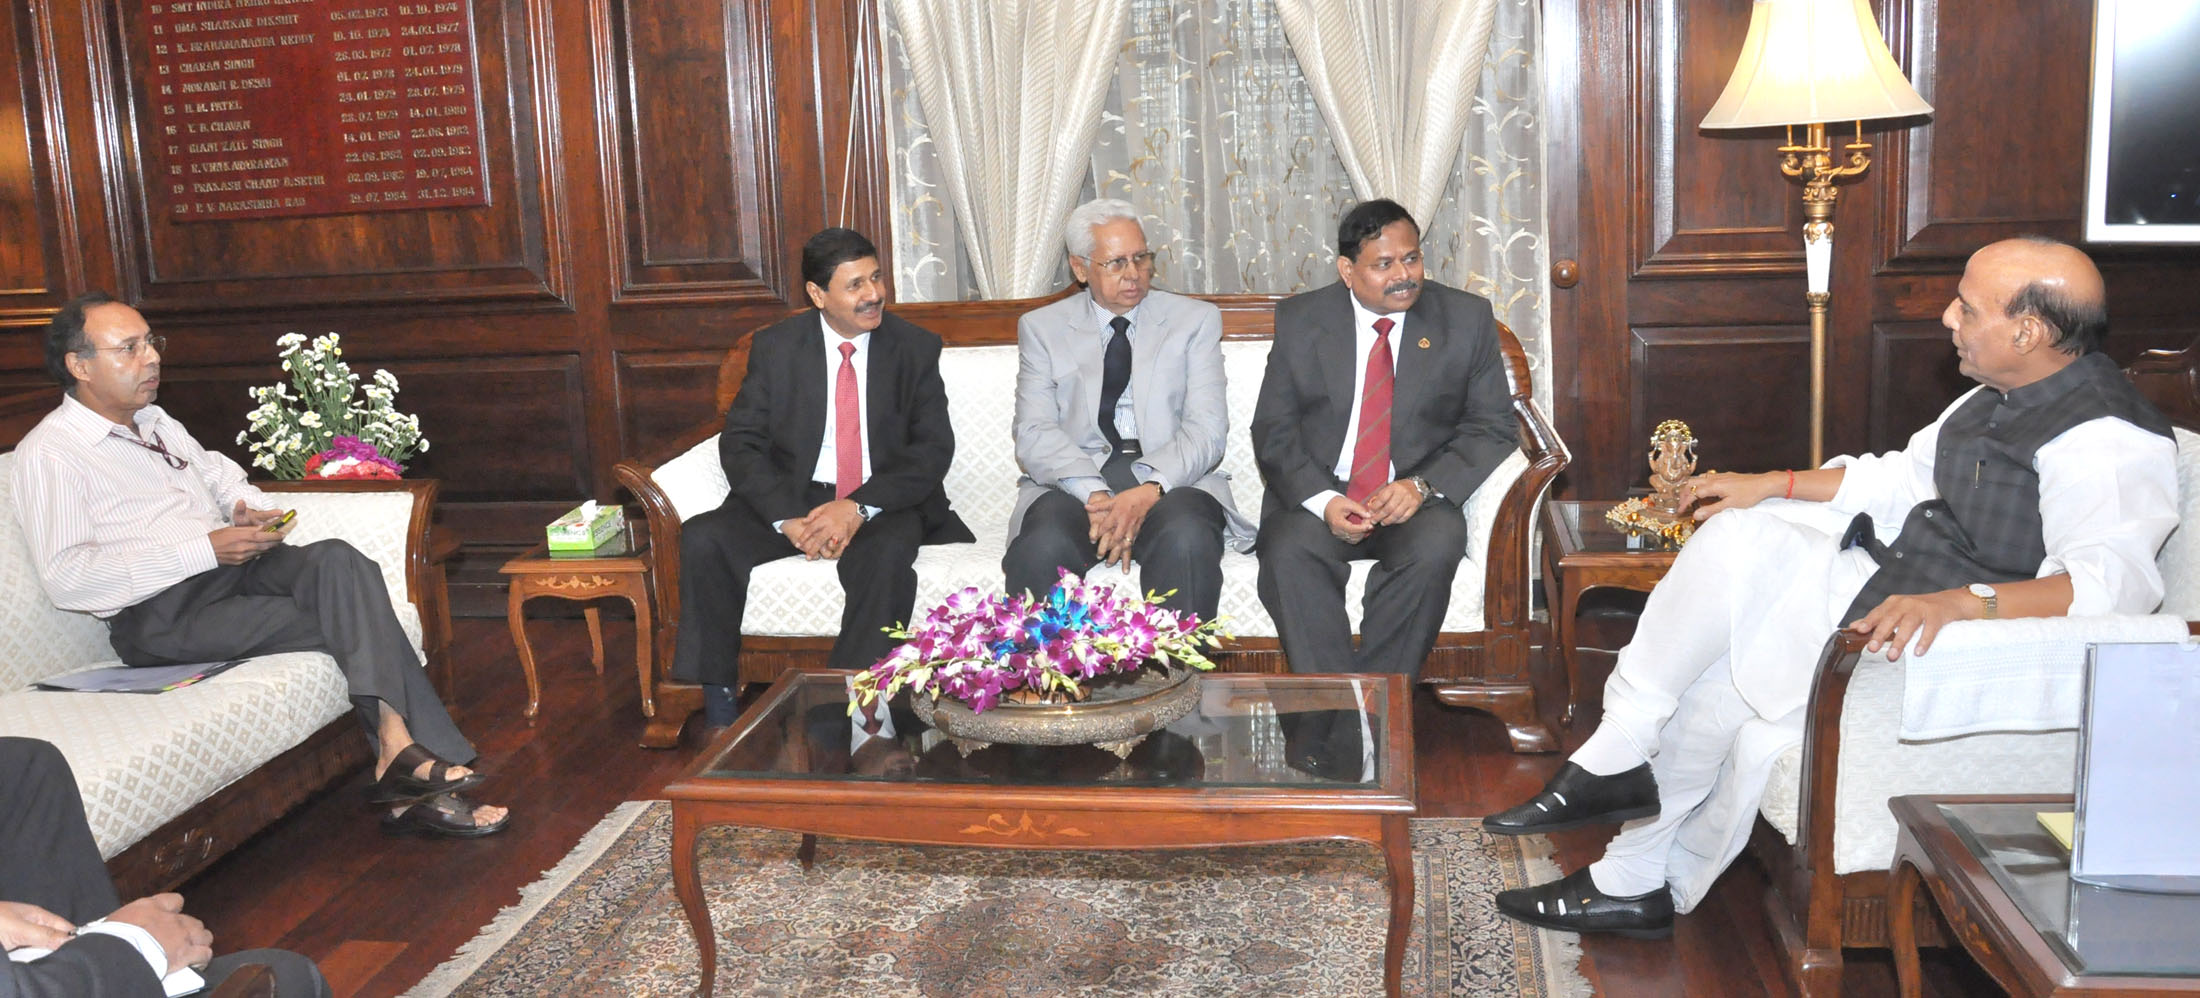 The Director General, Border Guard Bangladesh (BGB), Major General Aziz Ahmed calling on the Union Home Minister, Shri Rajnath Singh, in New Delhi on August 06, 2015.  The Bangladesh High Commissioner to India, Mr. Syed Muazzem Ali, the Director General, Border Security Force, Shri D.K. Pathak and the Secretary (Border Management), MHA, Shri Anoop Kumar Srivastava are also seen.